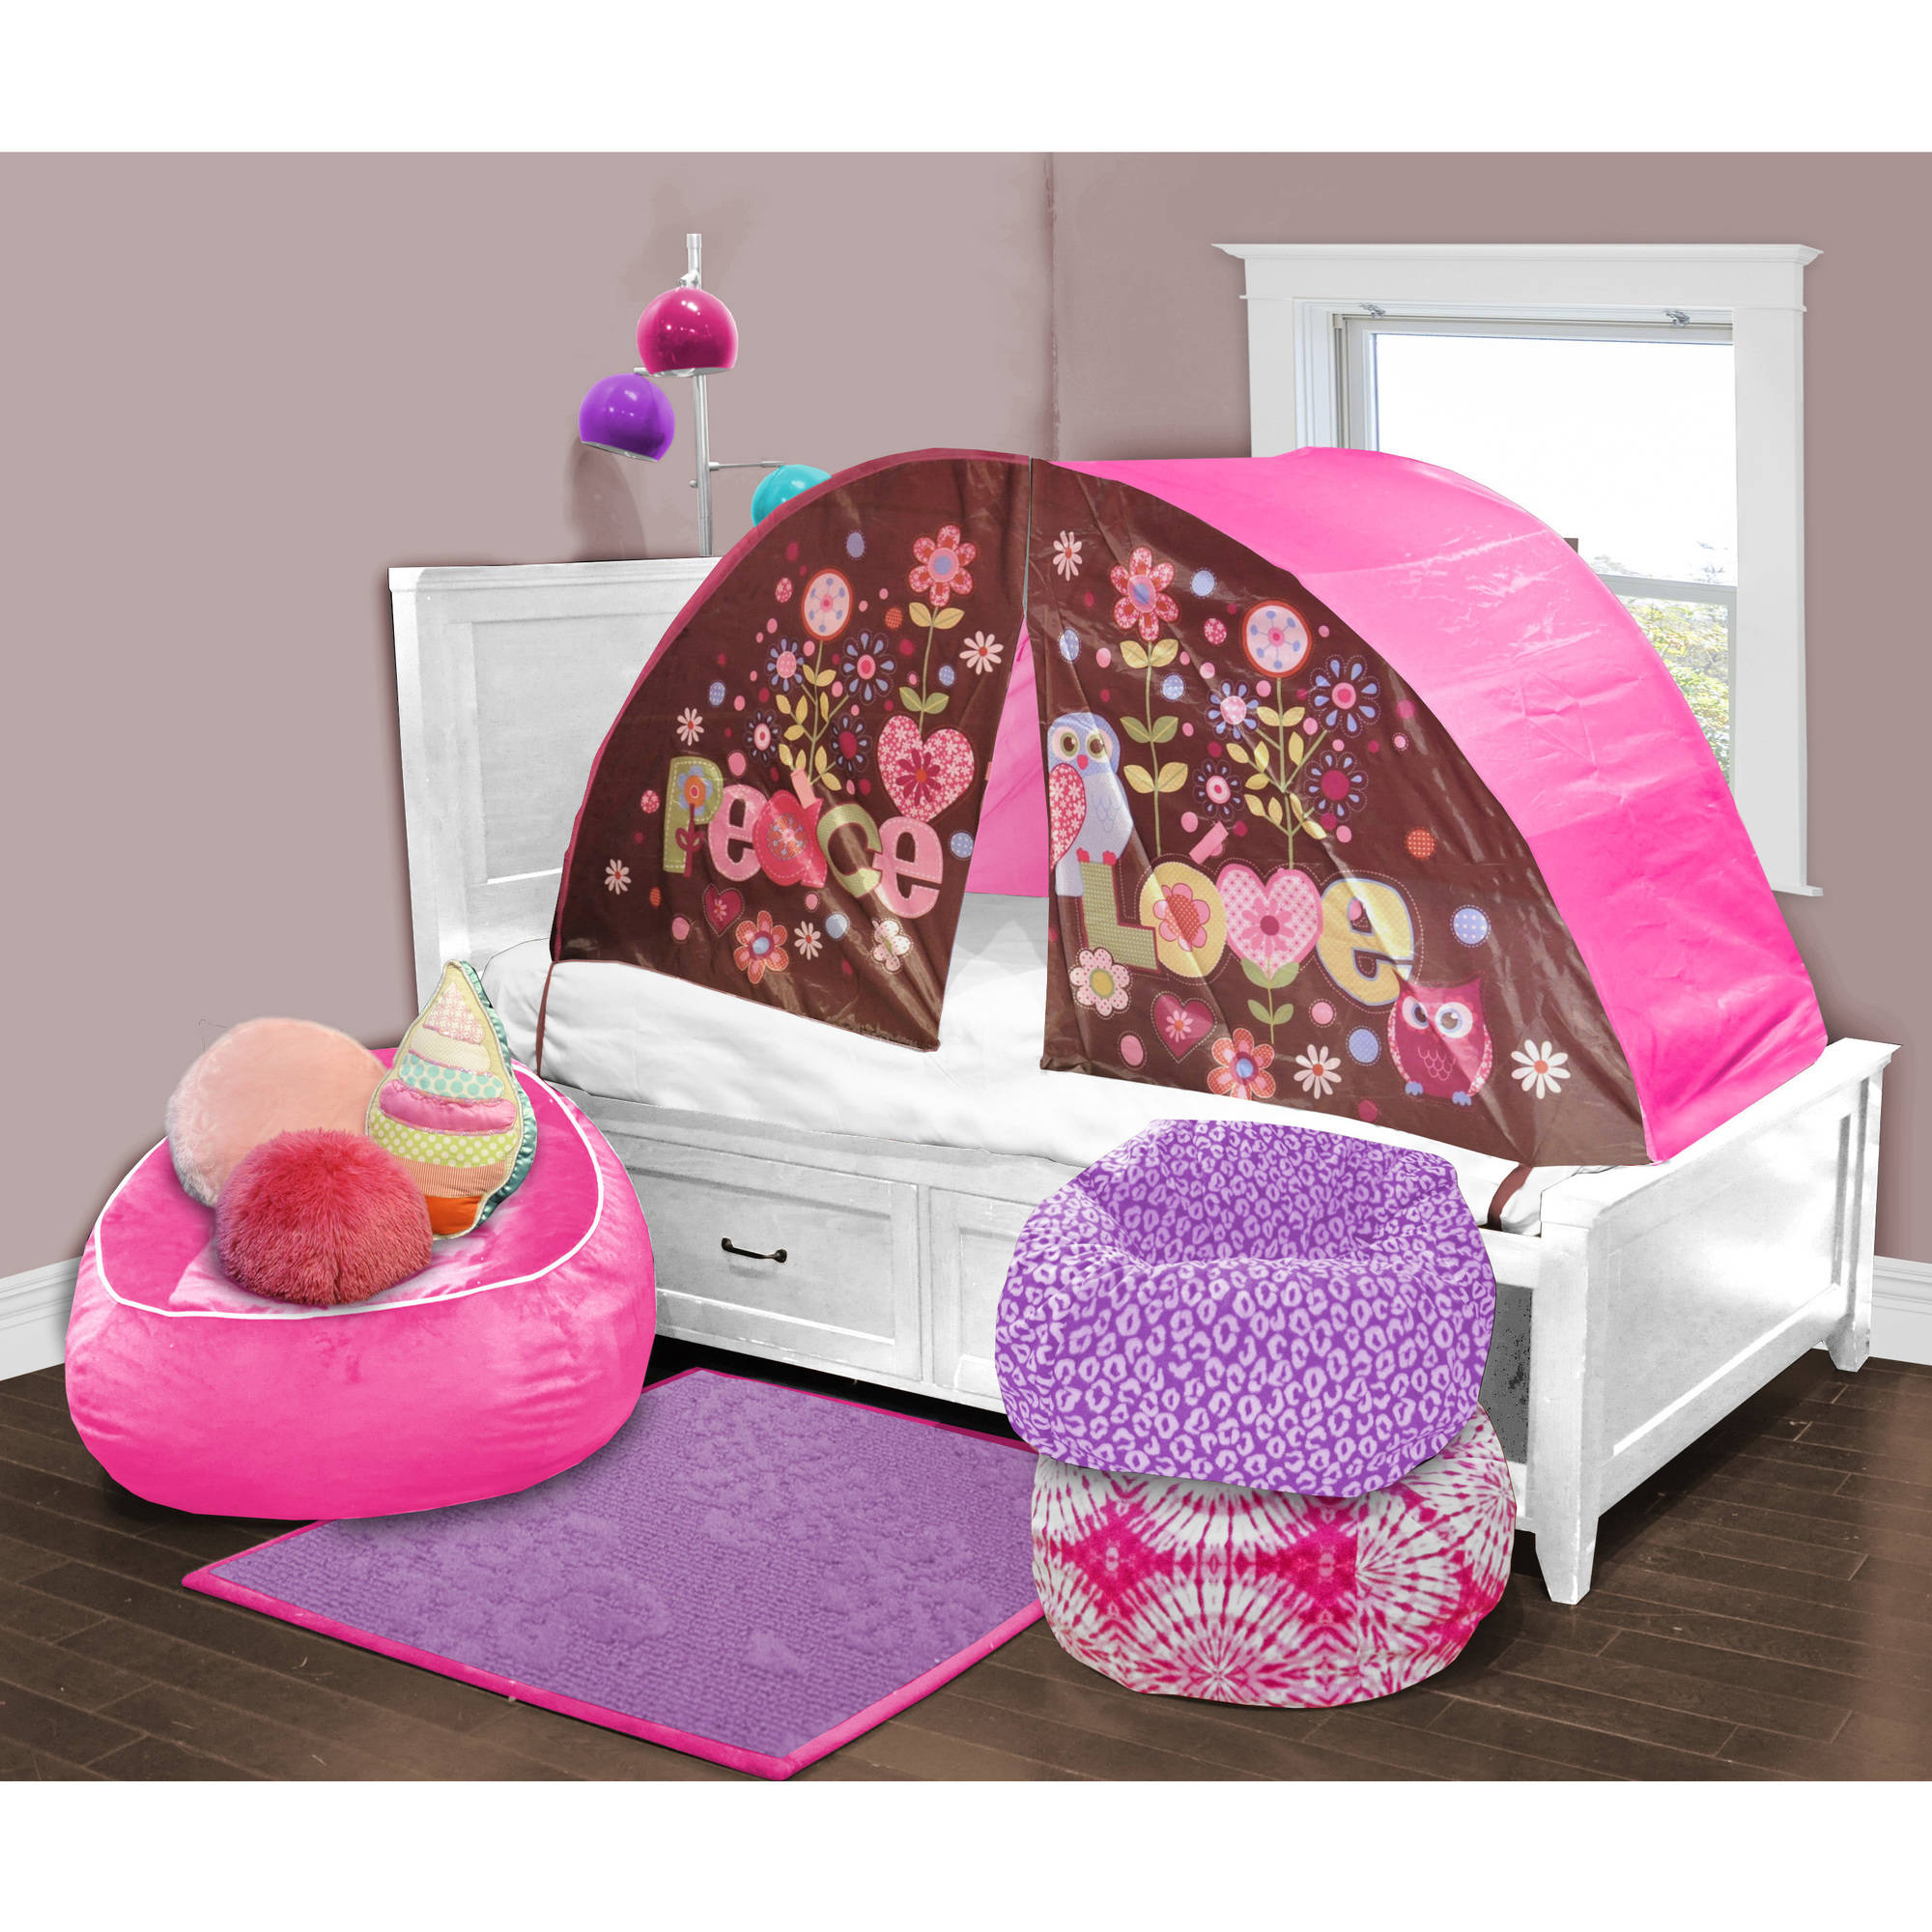 Kids Scene Owl Play Bed Tent